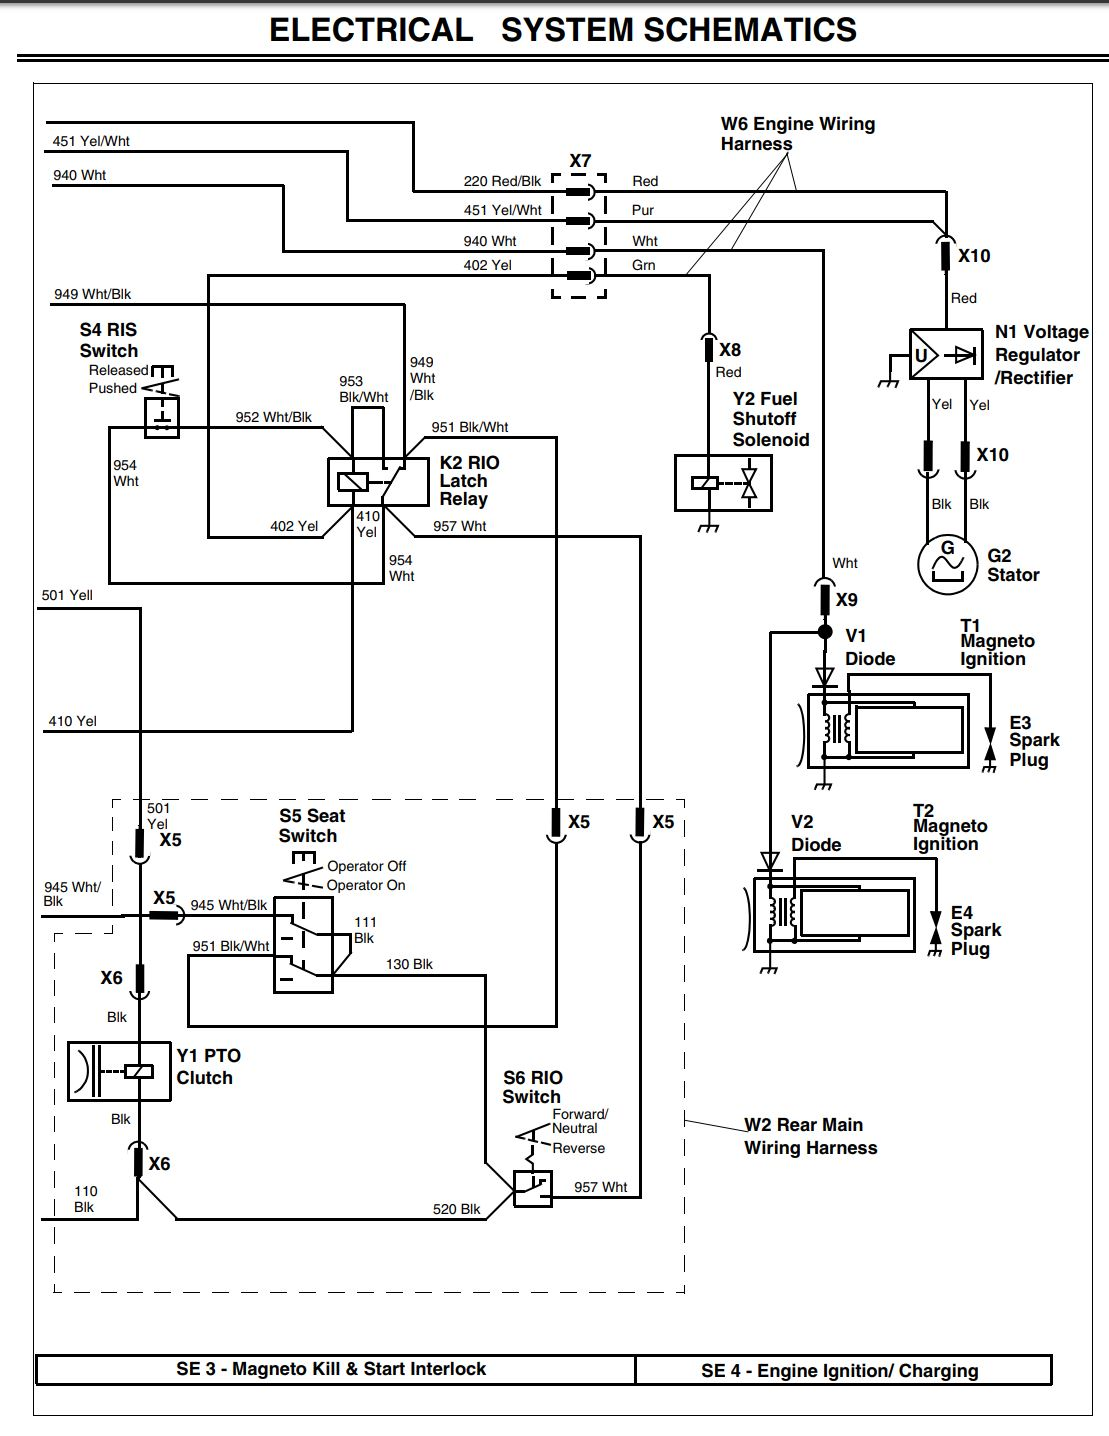 L130 Electrical Schematic_2.JPG